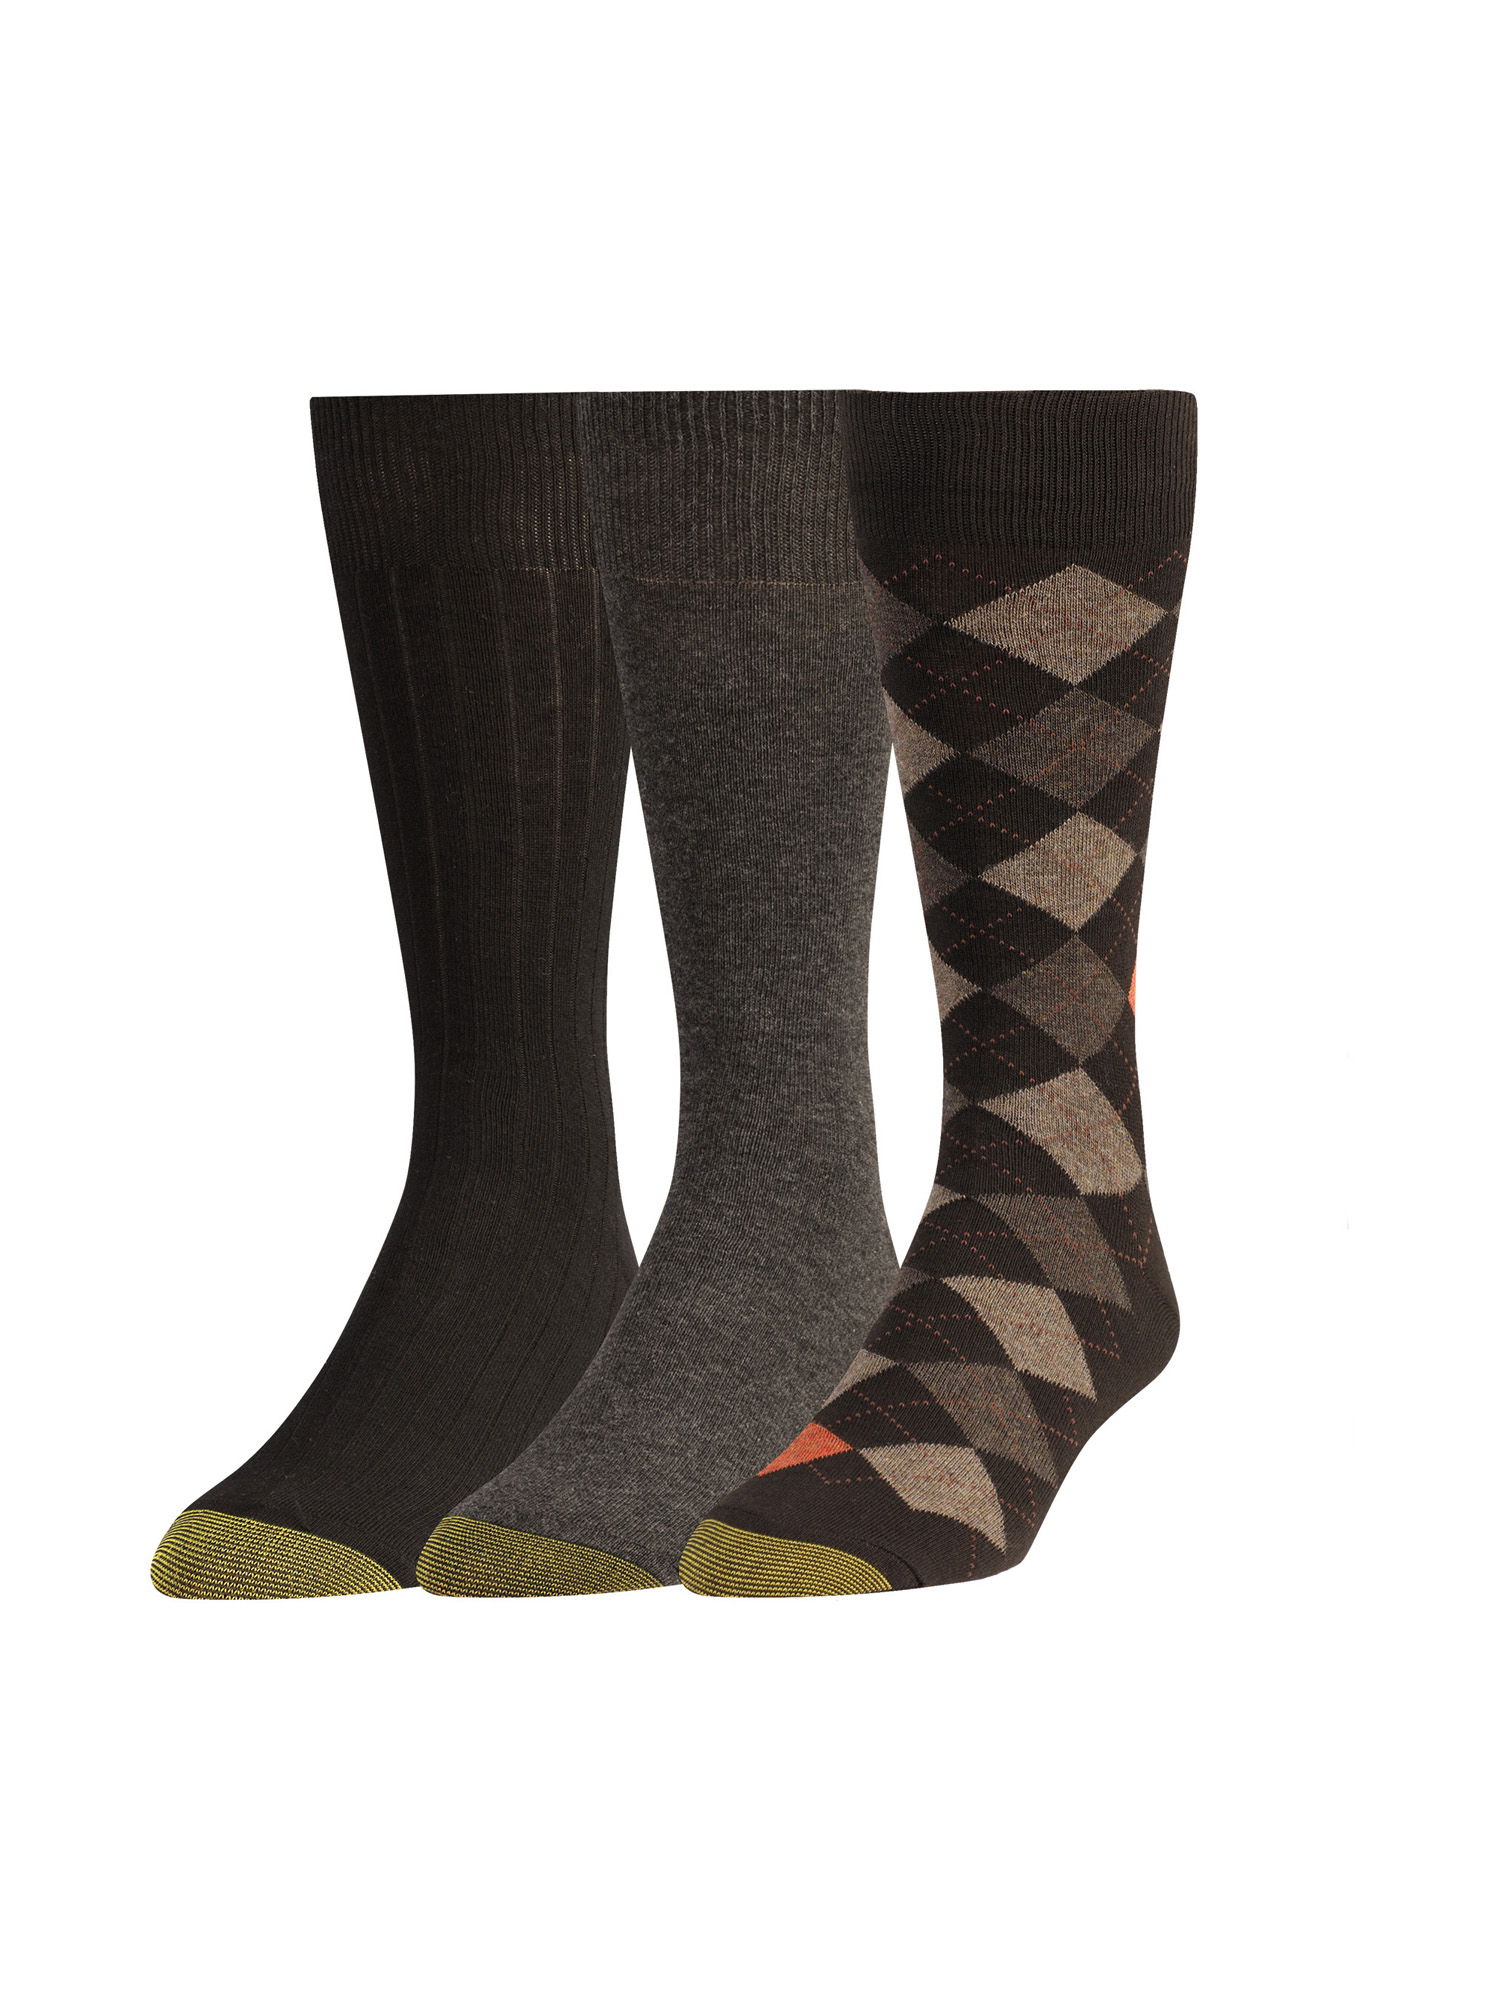 Gold Toe Men's Argyle, Flat Knit and Ribbed Crew Socks, 3 Pairs